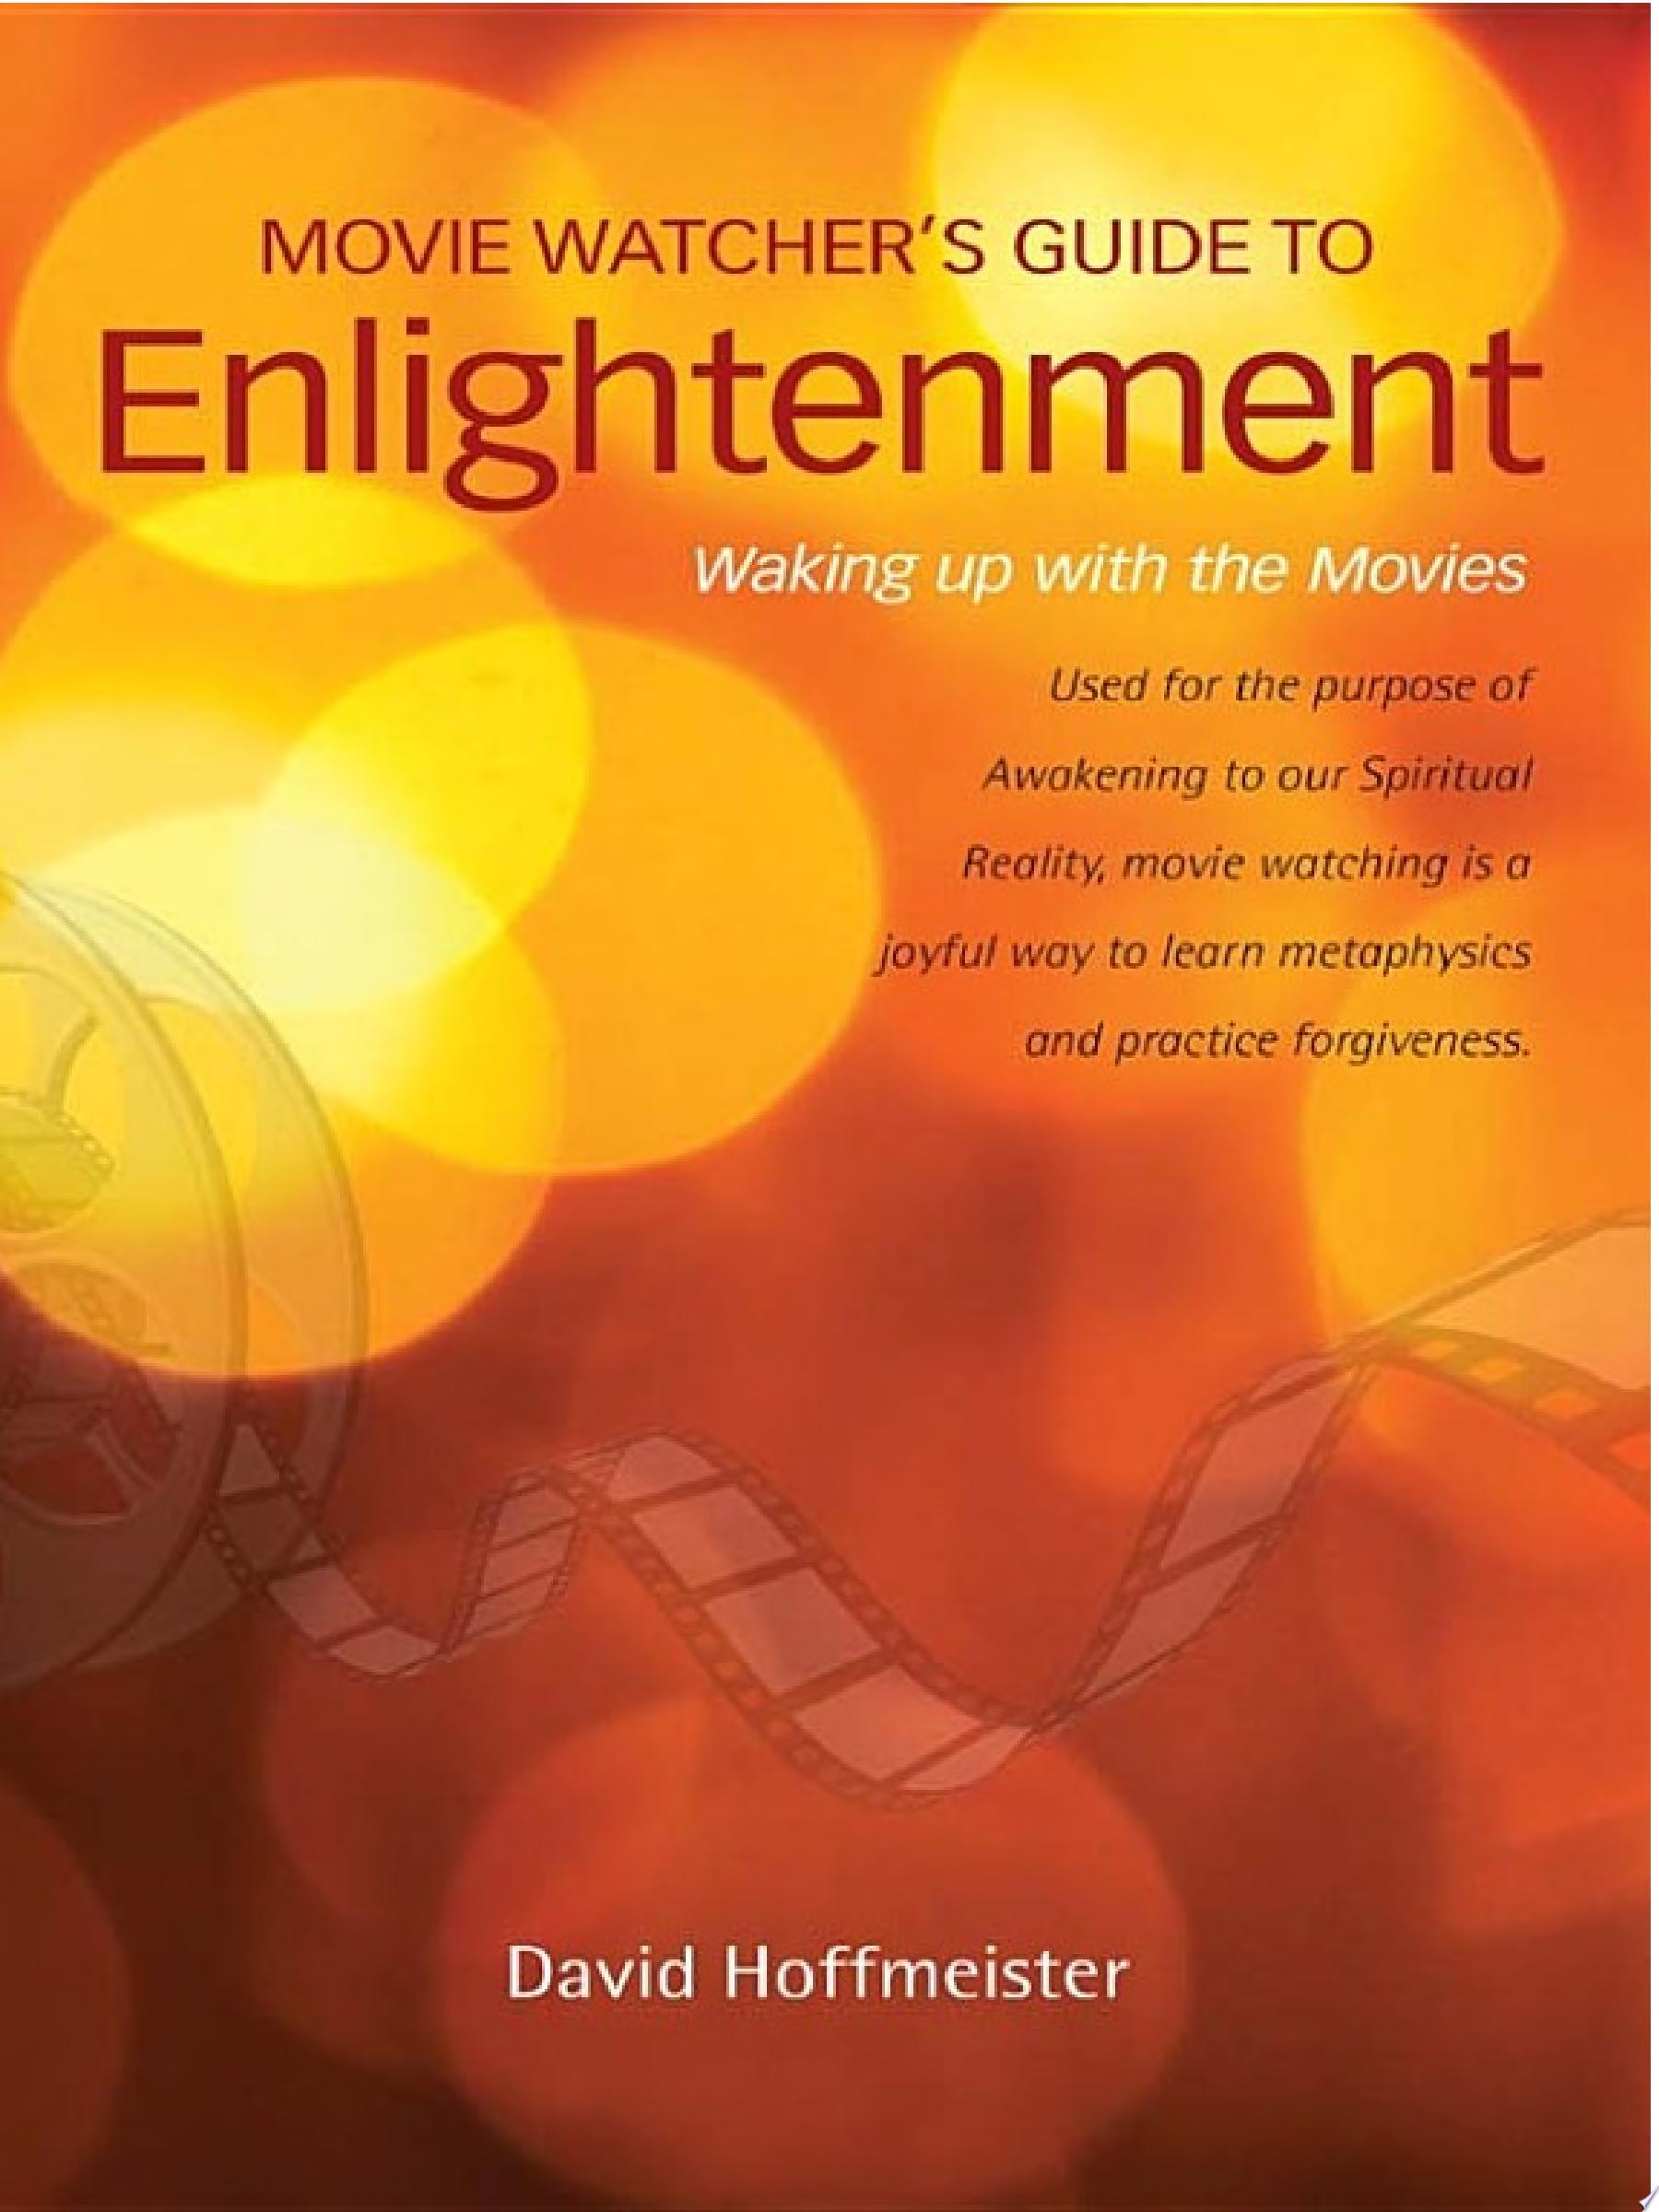 Movie Watcher s Guide to Enlightenment